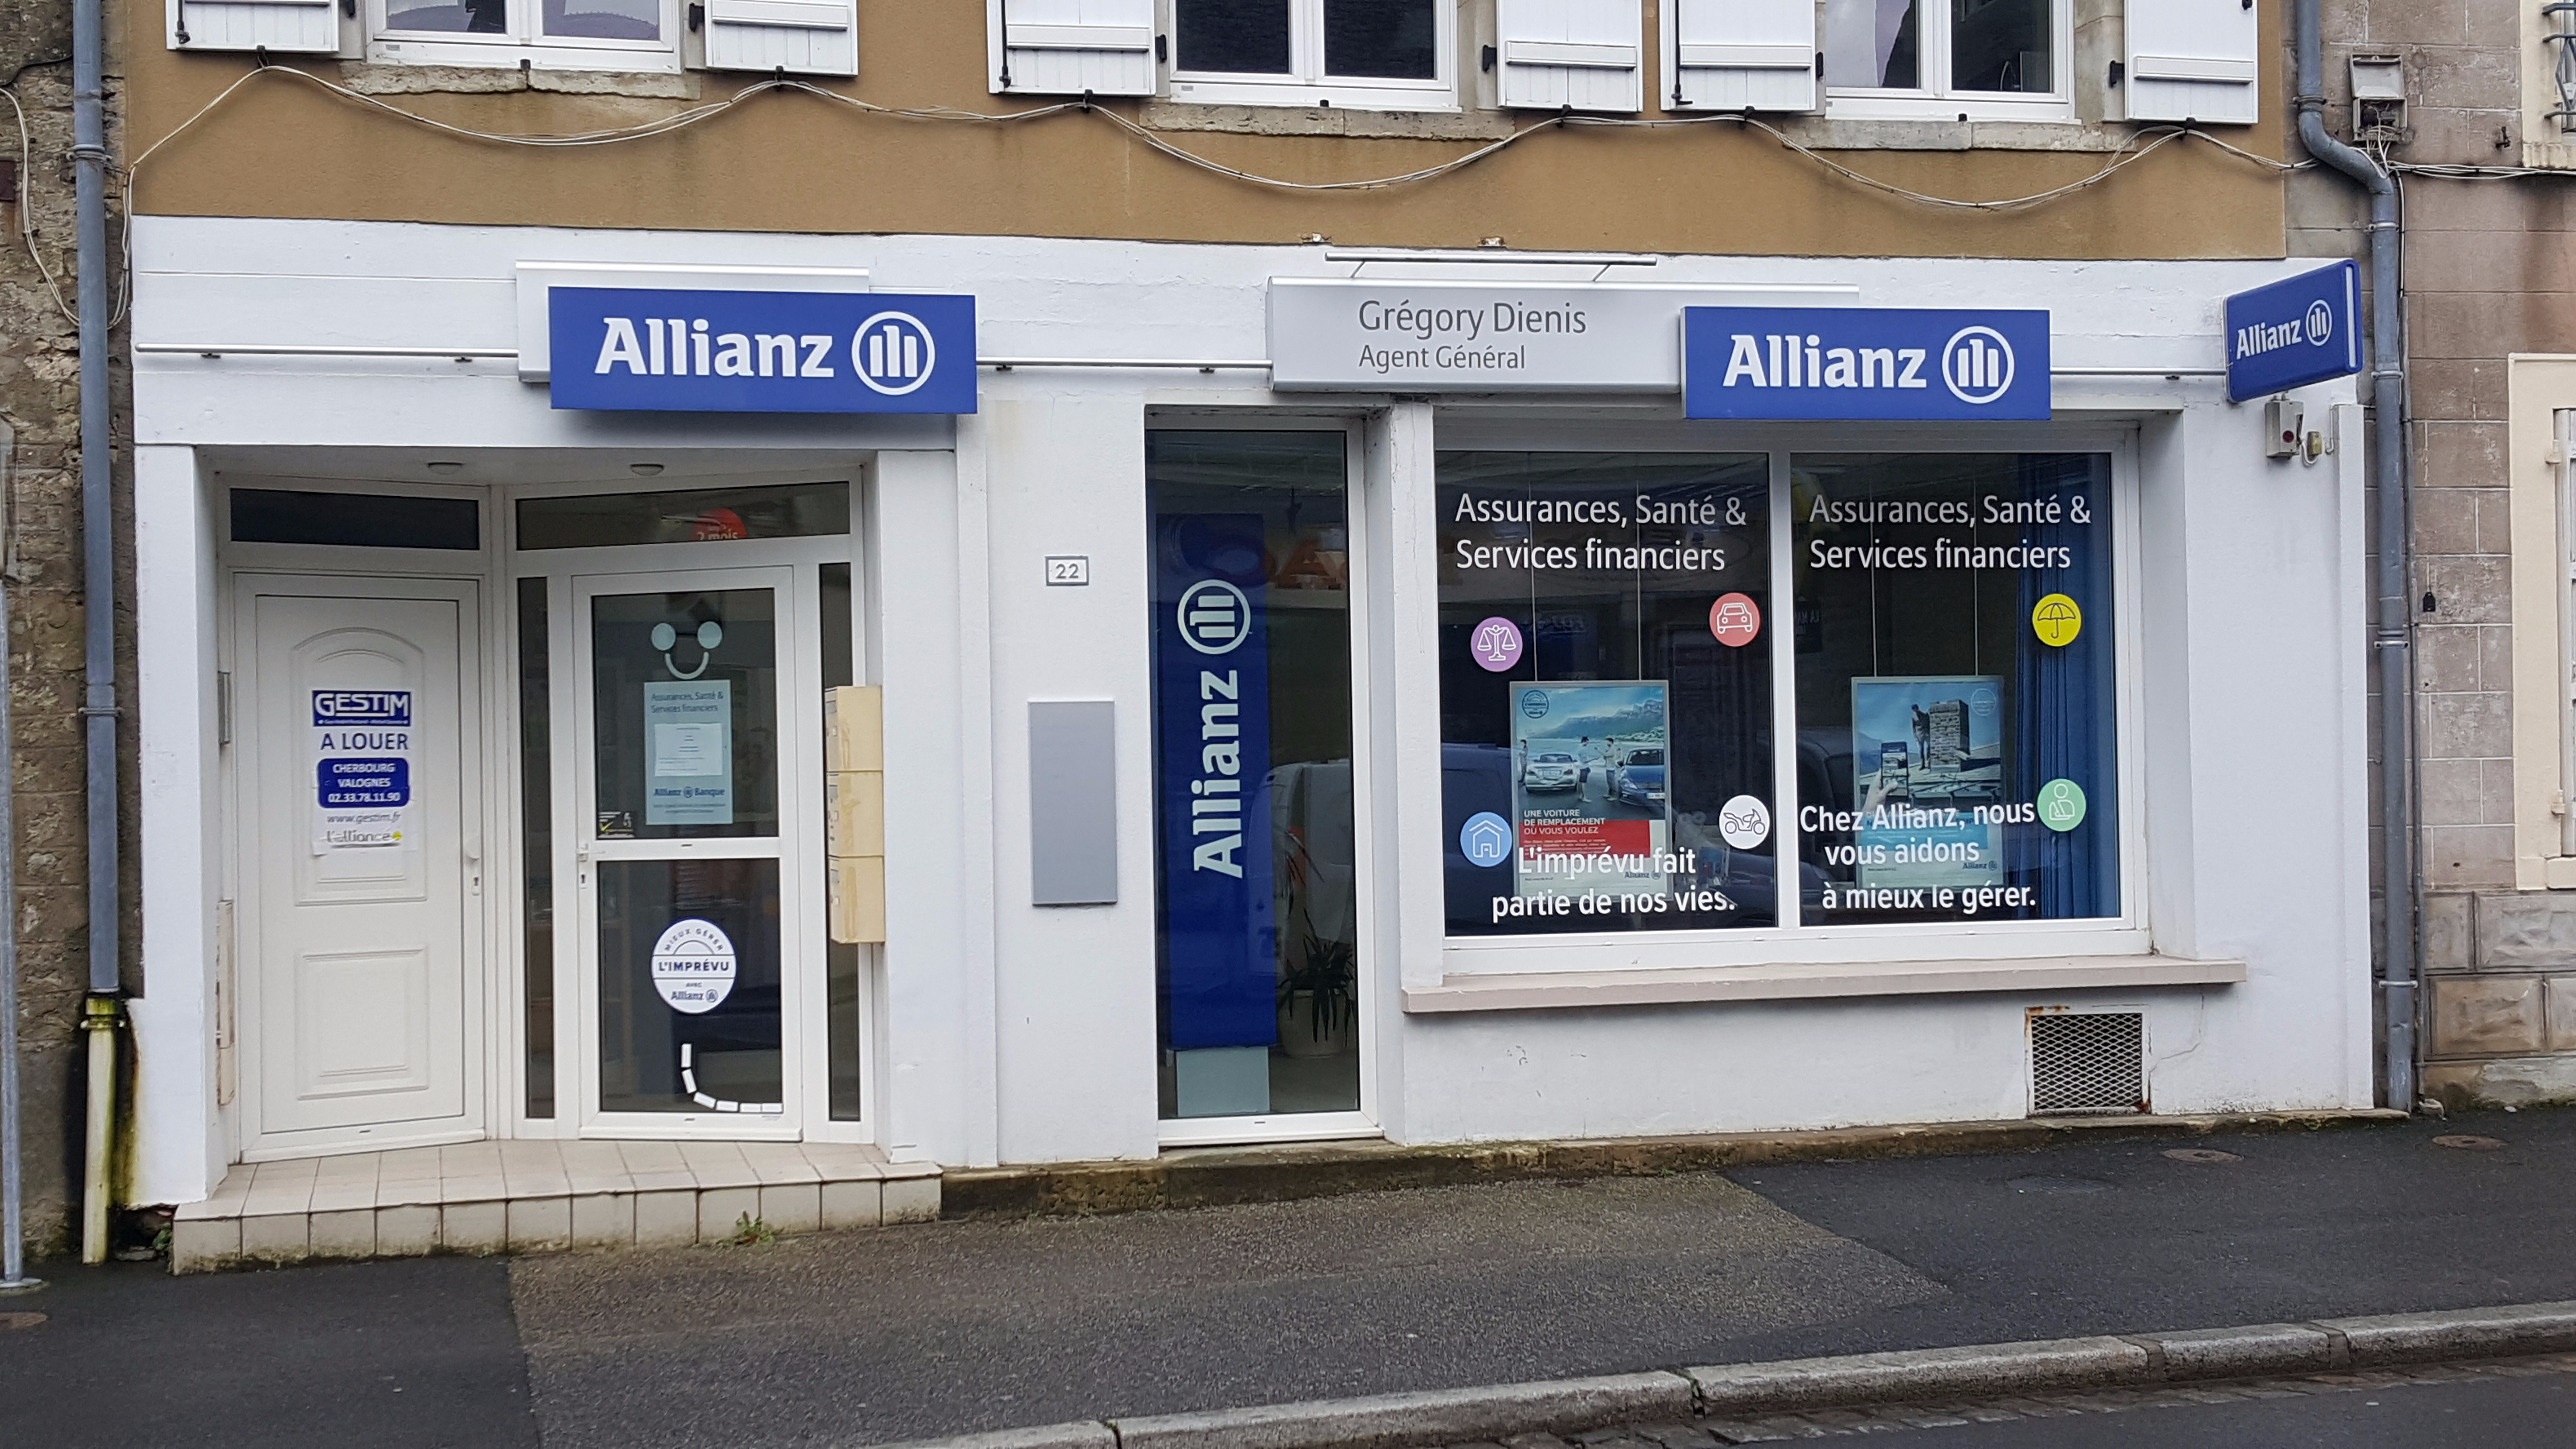 Allianz VALOGNES - Gregory DIENIS